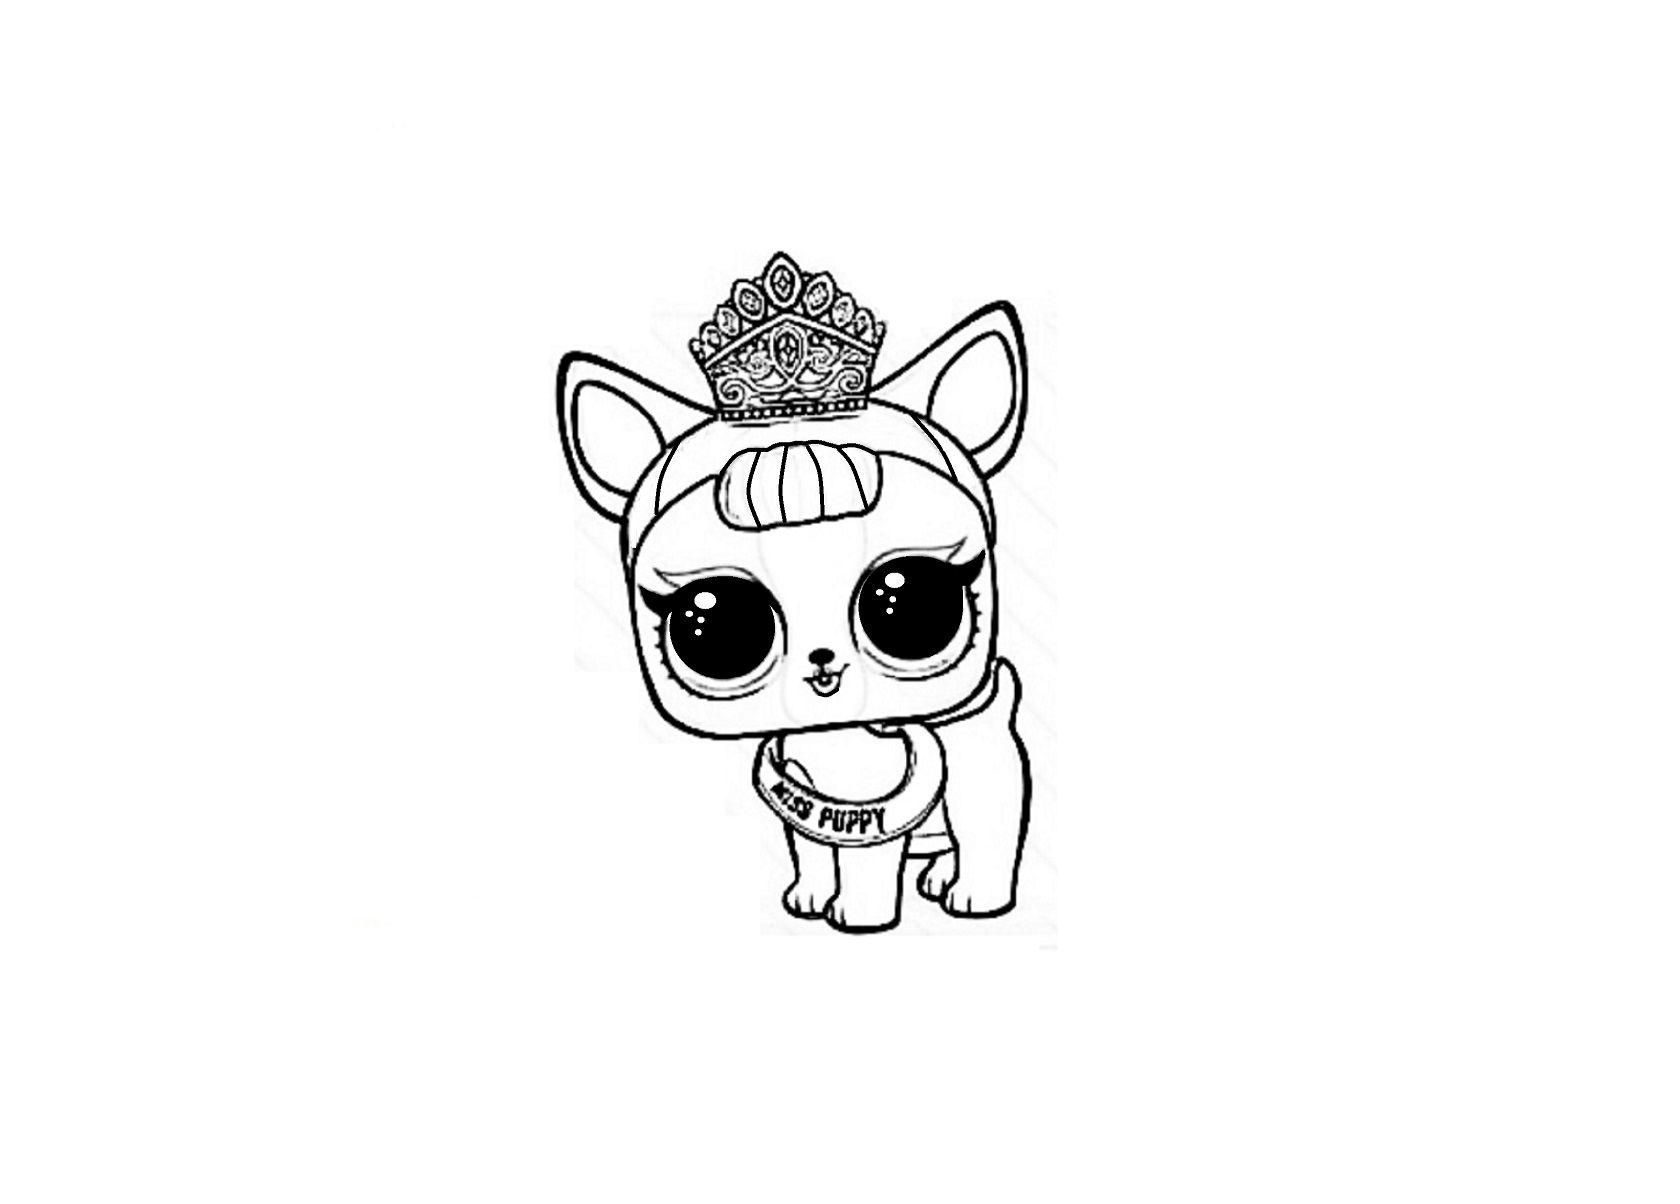 38 Lol Unicorn Printable Coloring Pages Unicorn Coloring Pages Printable Coloring Pages Bunny Coloring Pages